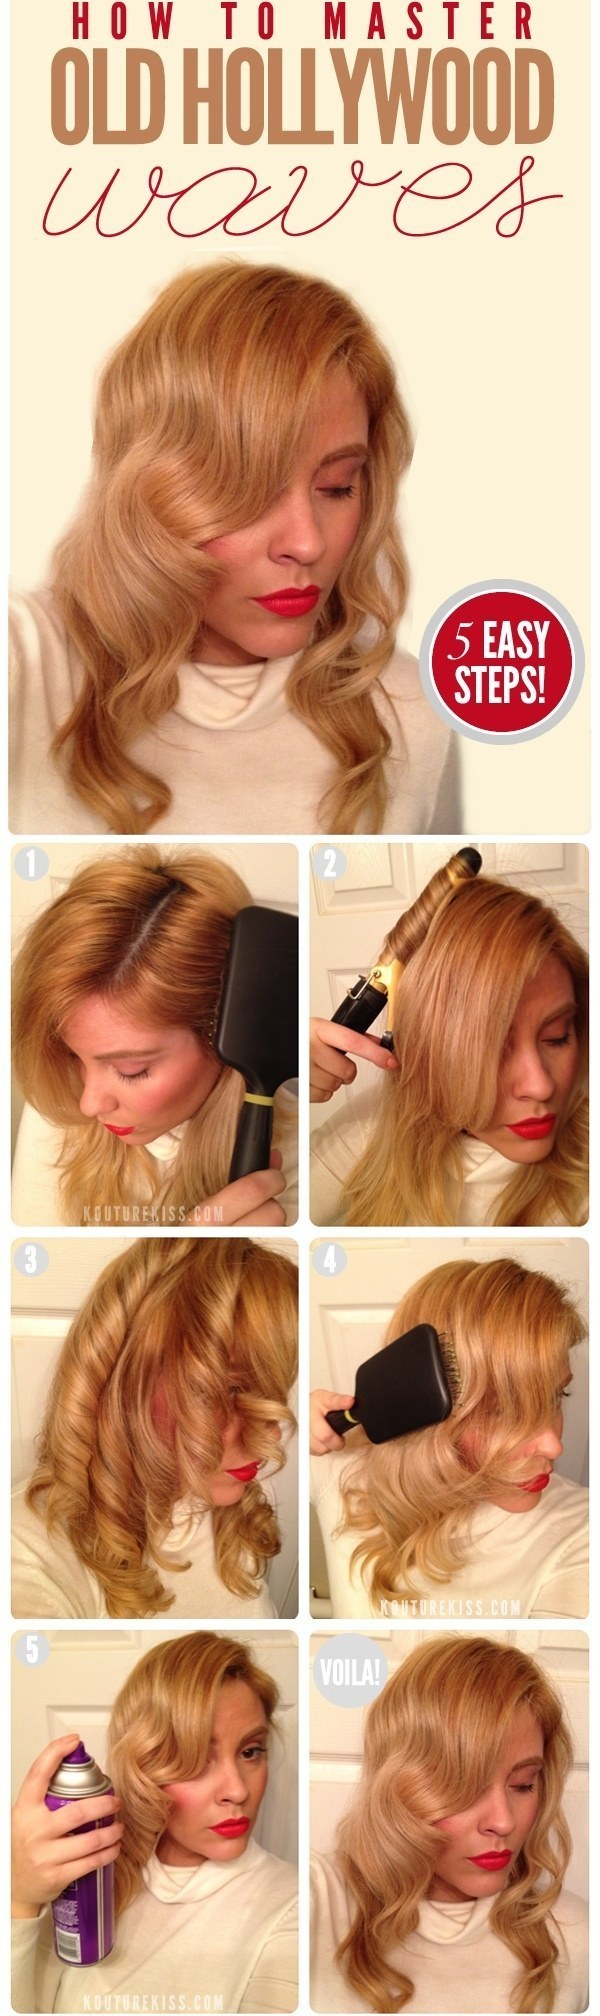 32 vintage hairstyle tutorials you should not miss | styles weekly